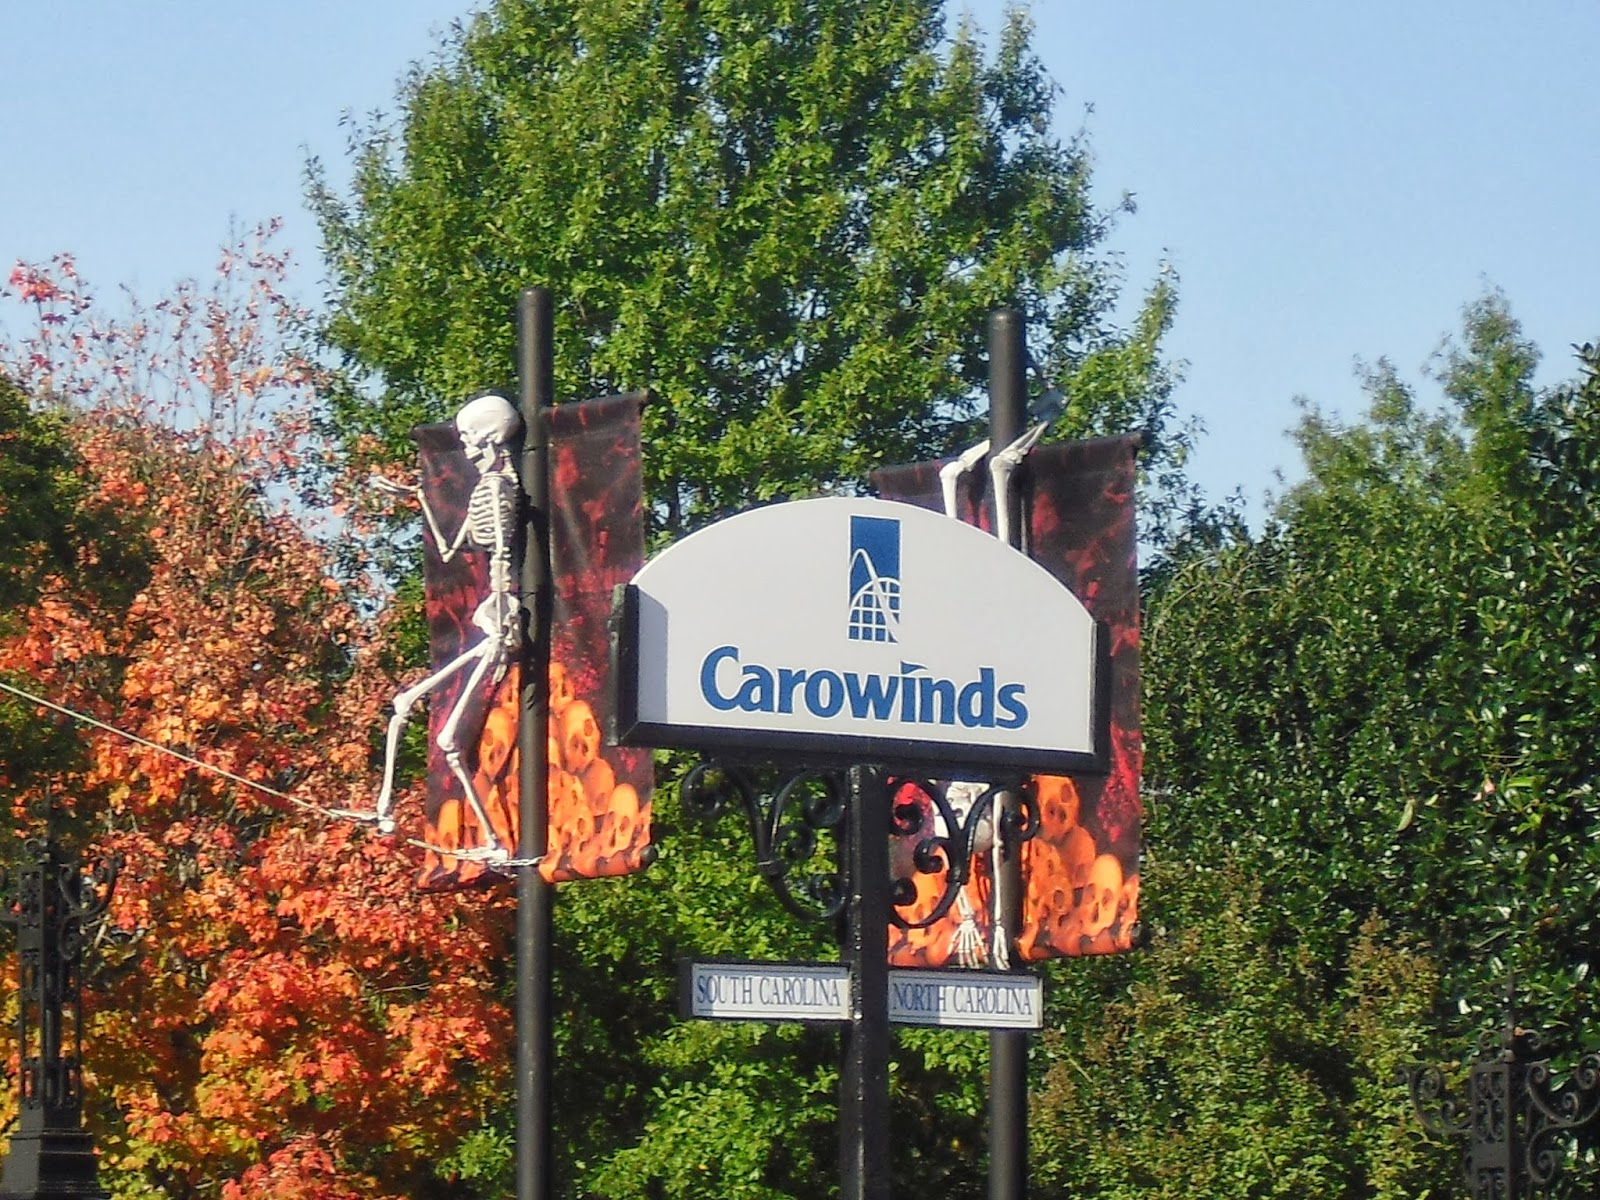 Plan your Carowinds visit early, buy a Good Any Day Ticket online and save off the front gate price! Visit any day the park is open to the public in and enjoy all of .